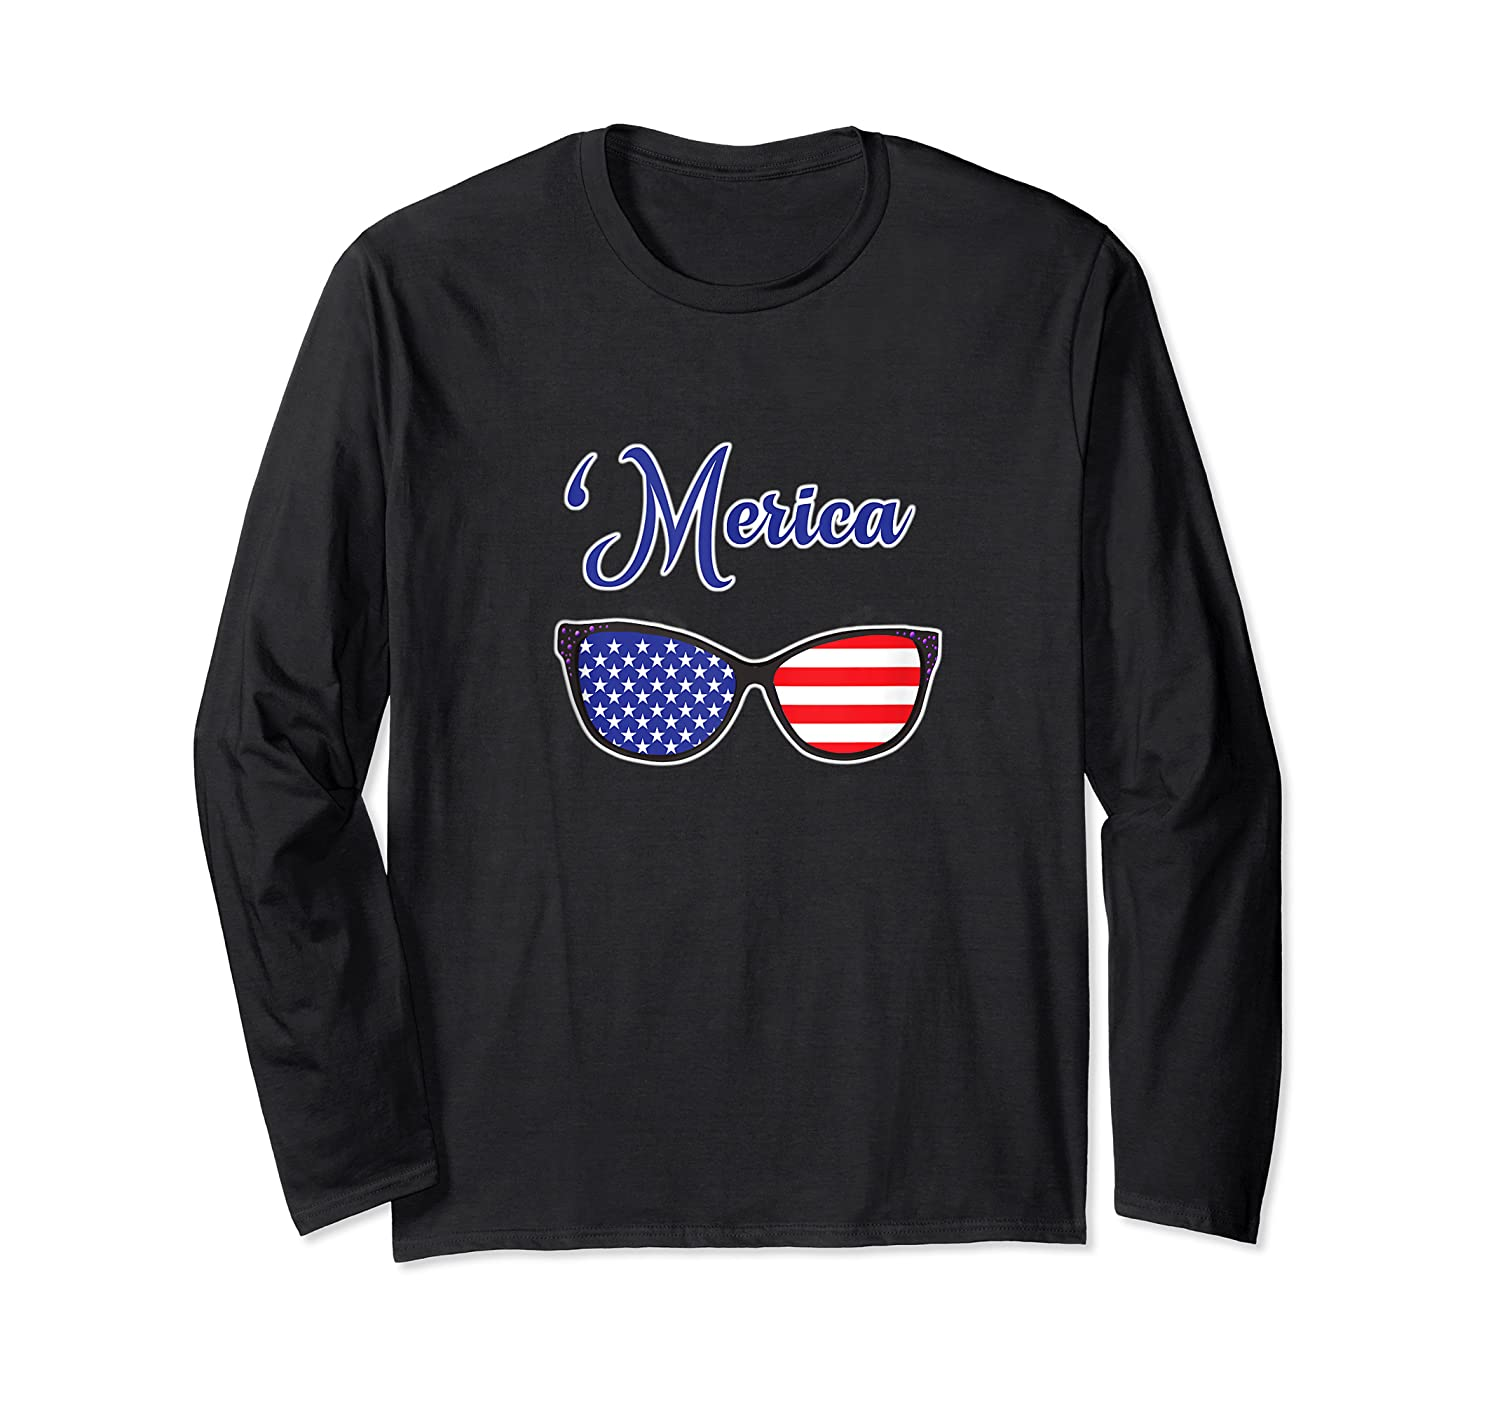 Merica Patriotic Memorial Day July 4th And Election Tank Top Shirts Long Sleeve T-shirt